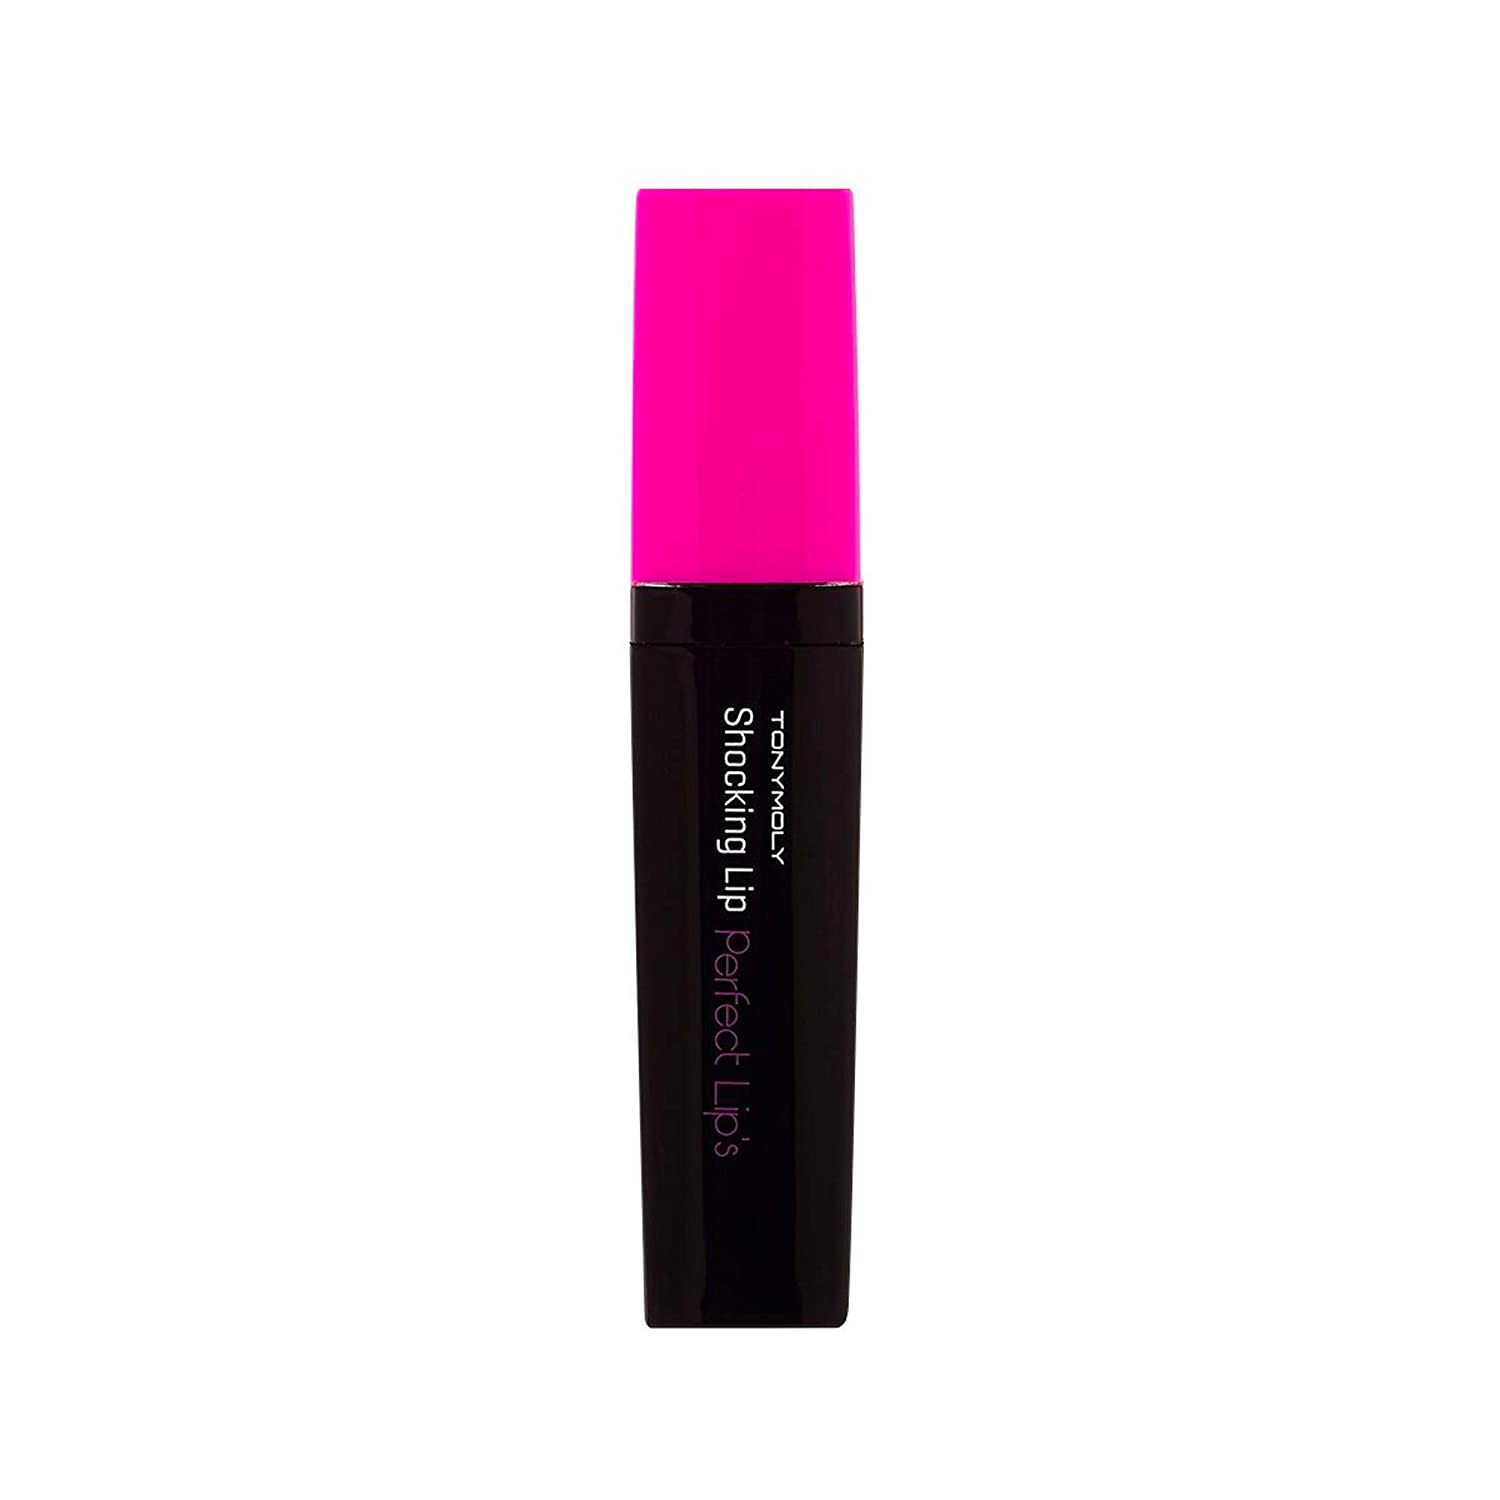 OFFicial Tonymoly mart Pink Shocking Lip Perfect